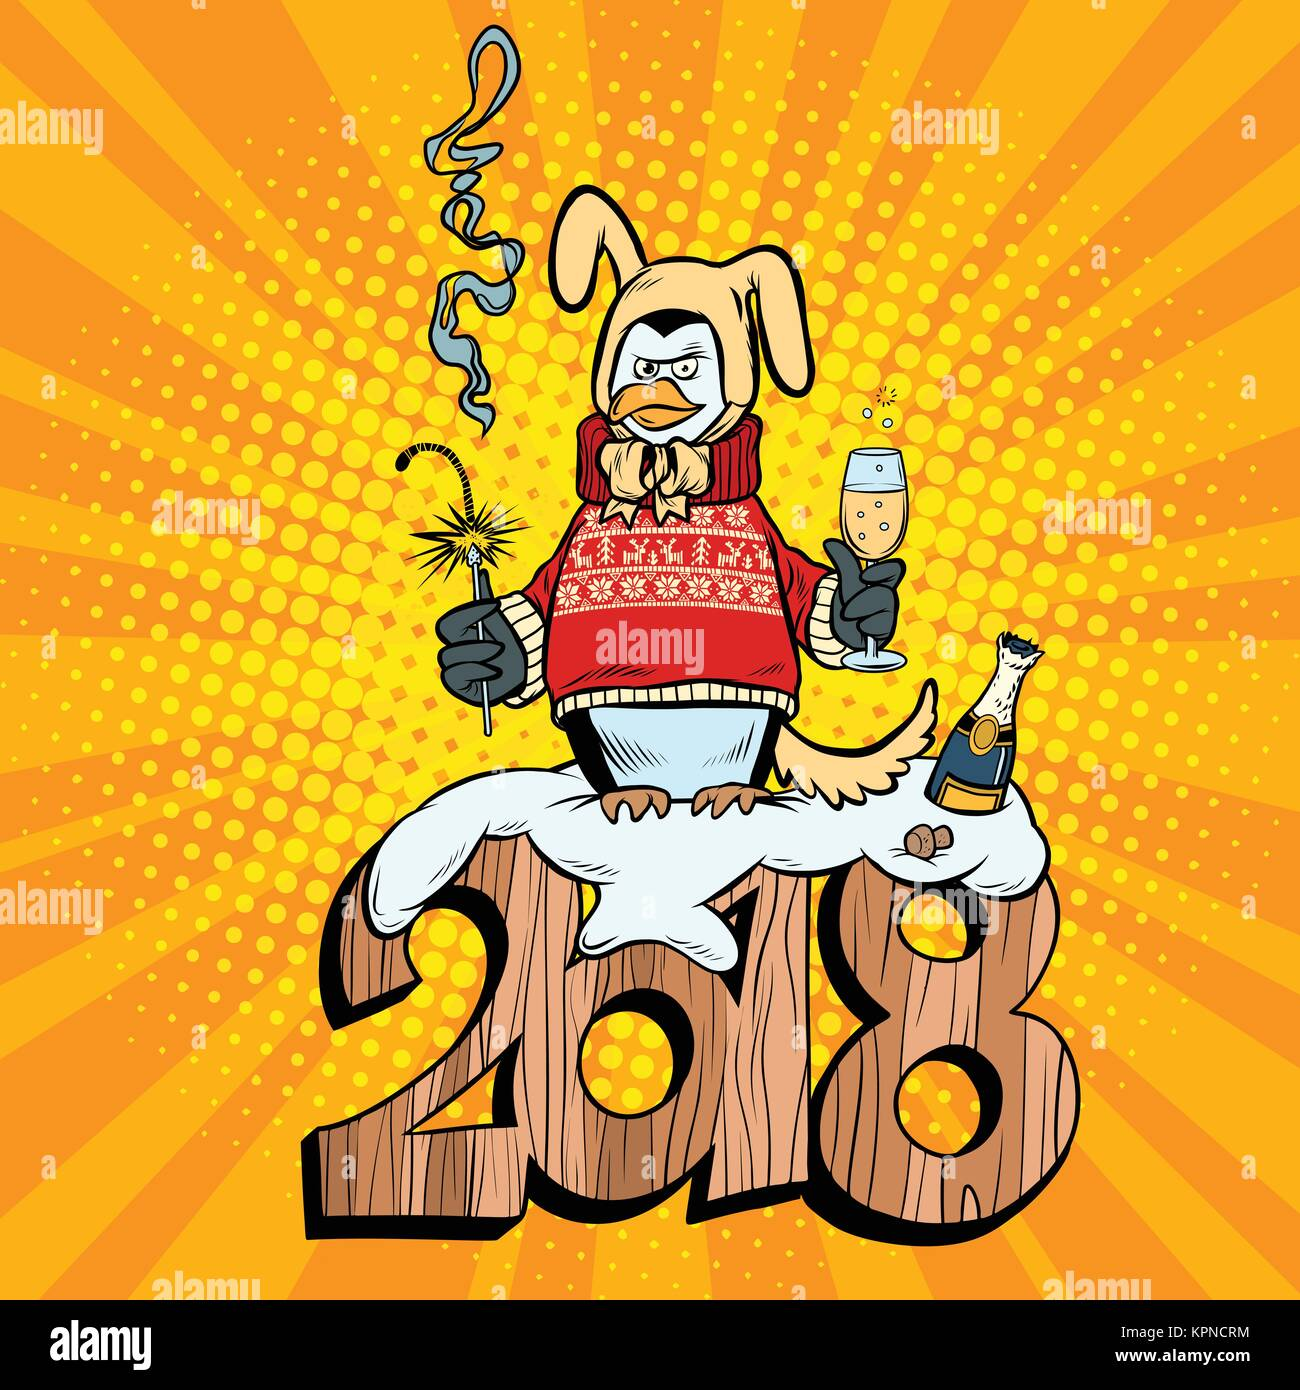 2018 new year penguin suit yellow earth dog champagne and sparklers comic book cartoon pop art retro vector illustration drawing